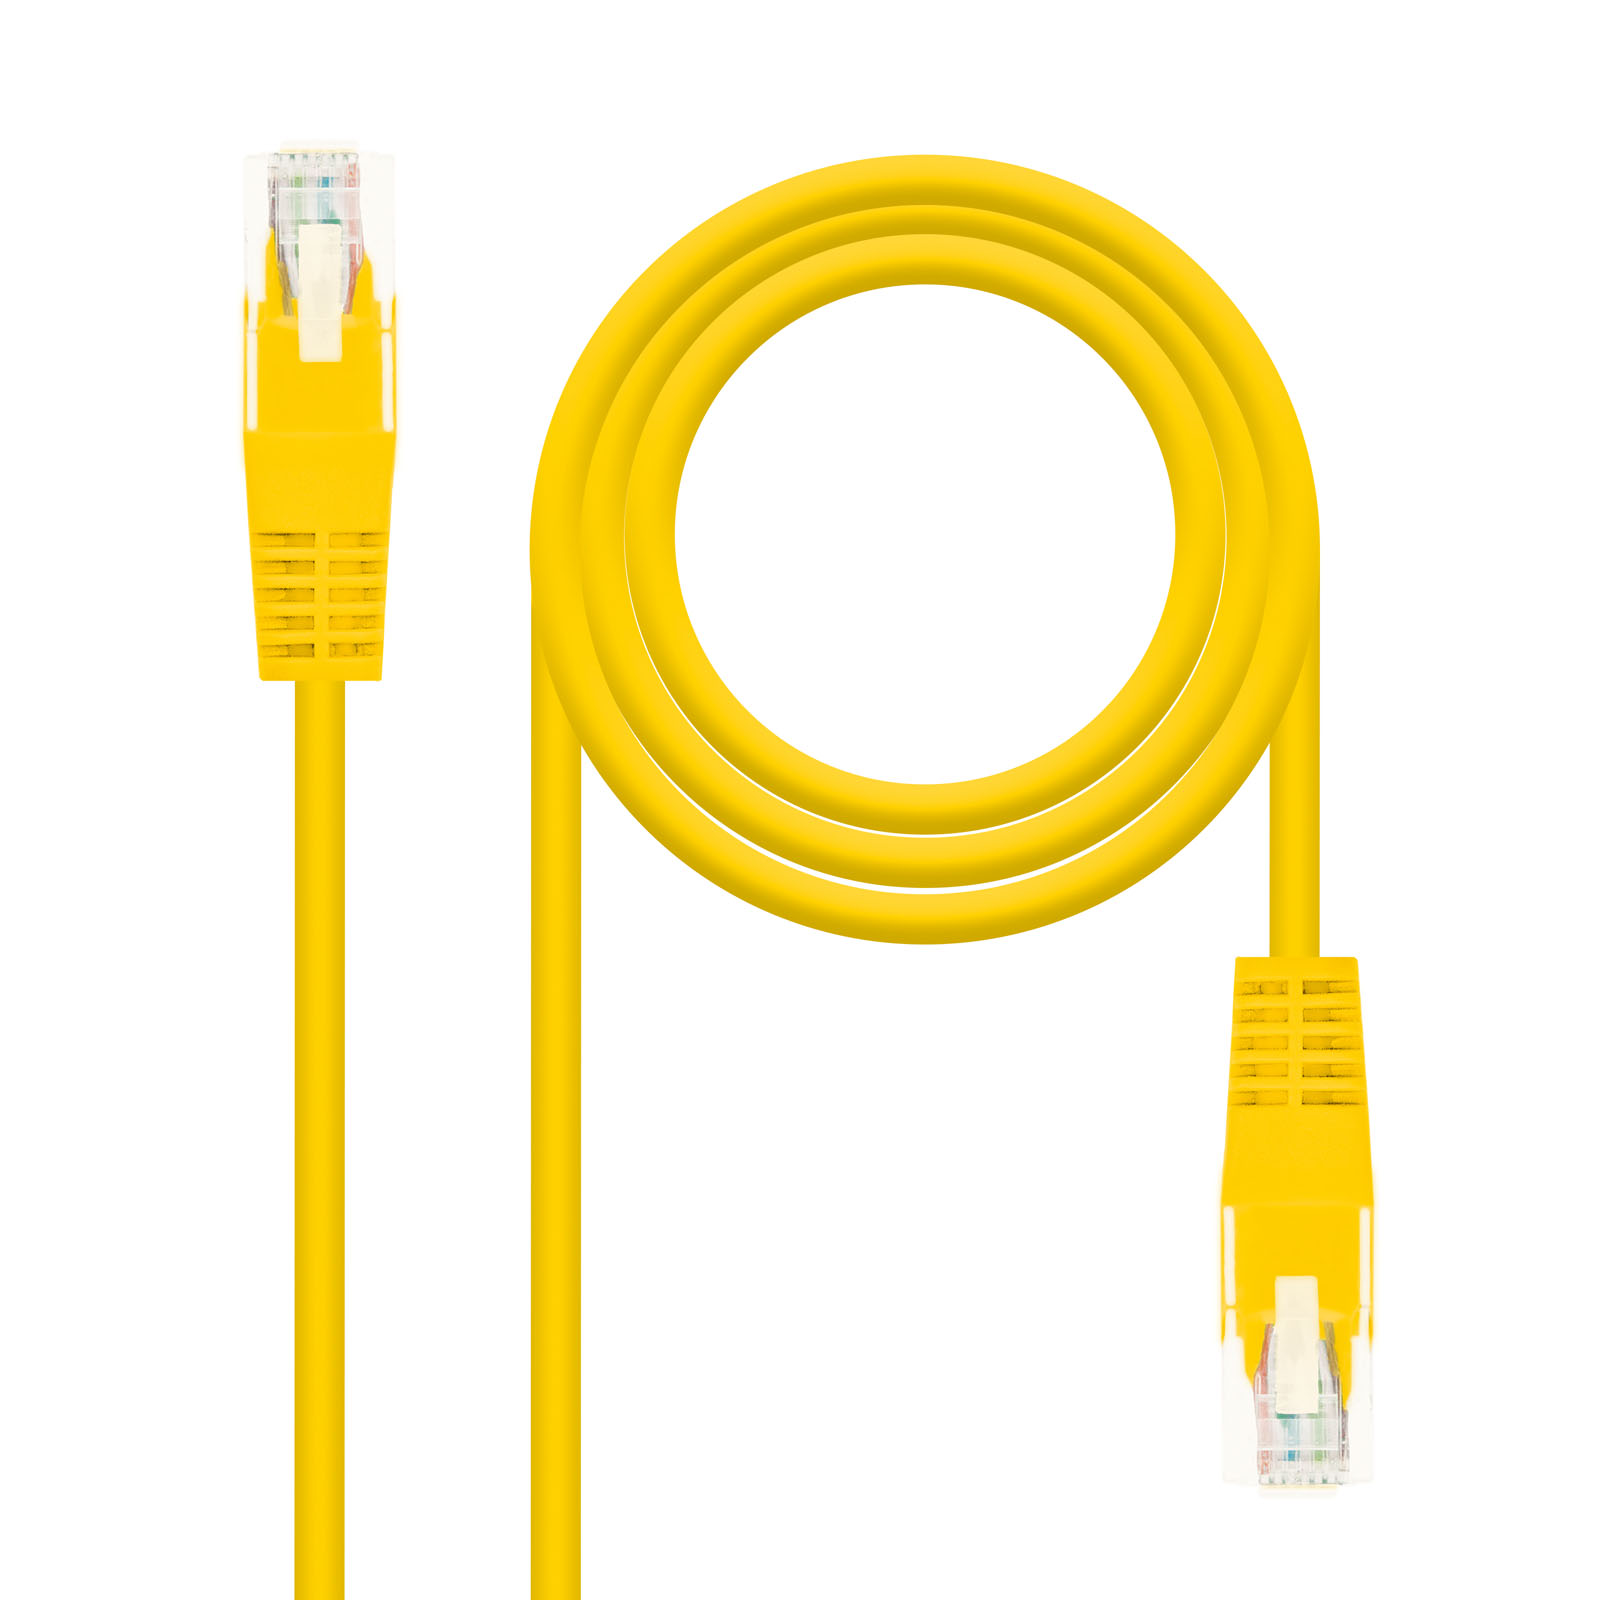 CABLE RED LATIGUILLO RJ45 CAT.5E UTP AWG24 AMARILLO 0.5 M